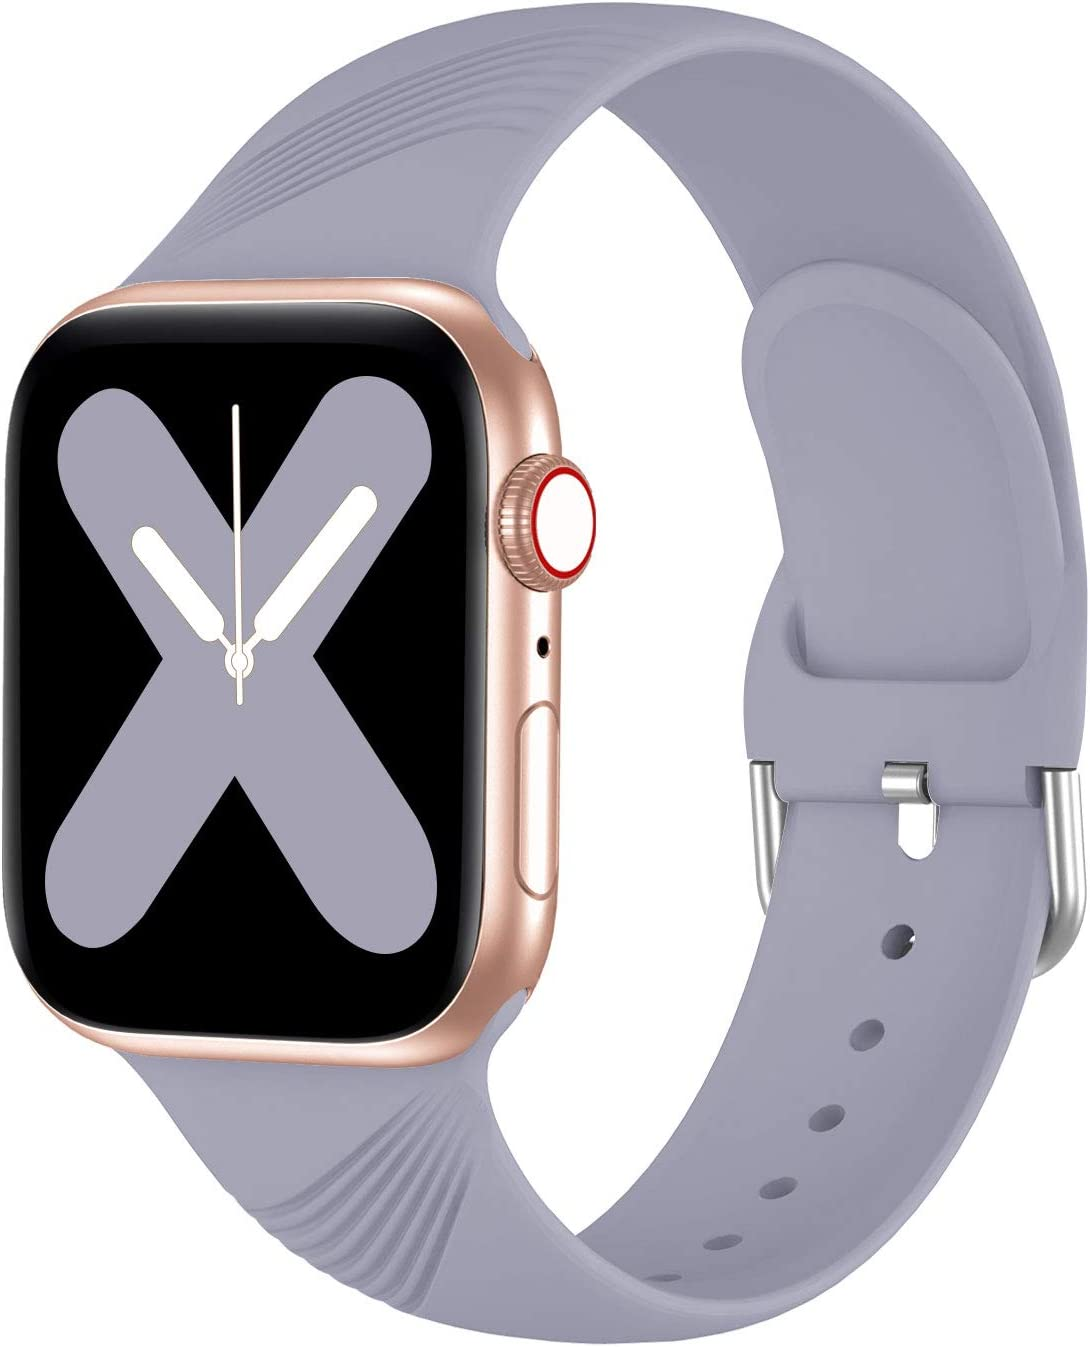 Seizehe Compatible with Apple Watch Bands 38mm 40mm SE Series 6 Series 5 Series 3, Silicone Sport iWatch Bands 38mm 40mm Women Men Girl Boy Compatible for Apple Watch SE Series 6 5 4 3 2 1